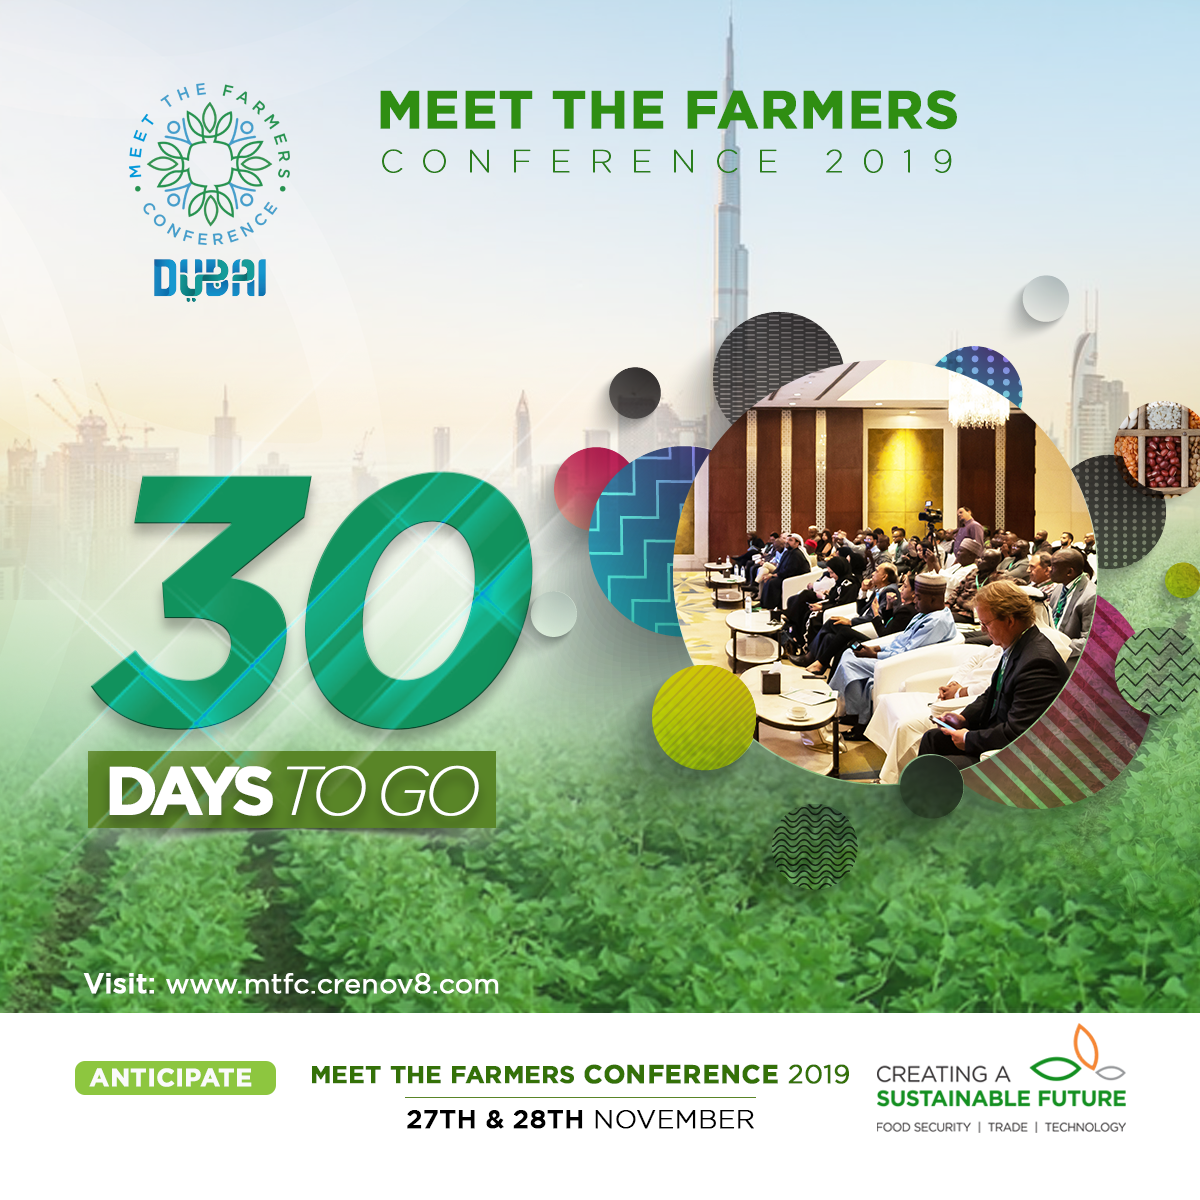 MTFC 2019 Holds in 30 days, the Largest Agro Conference in the MENA